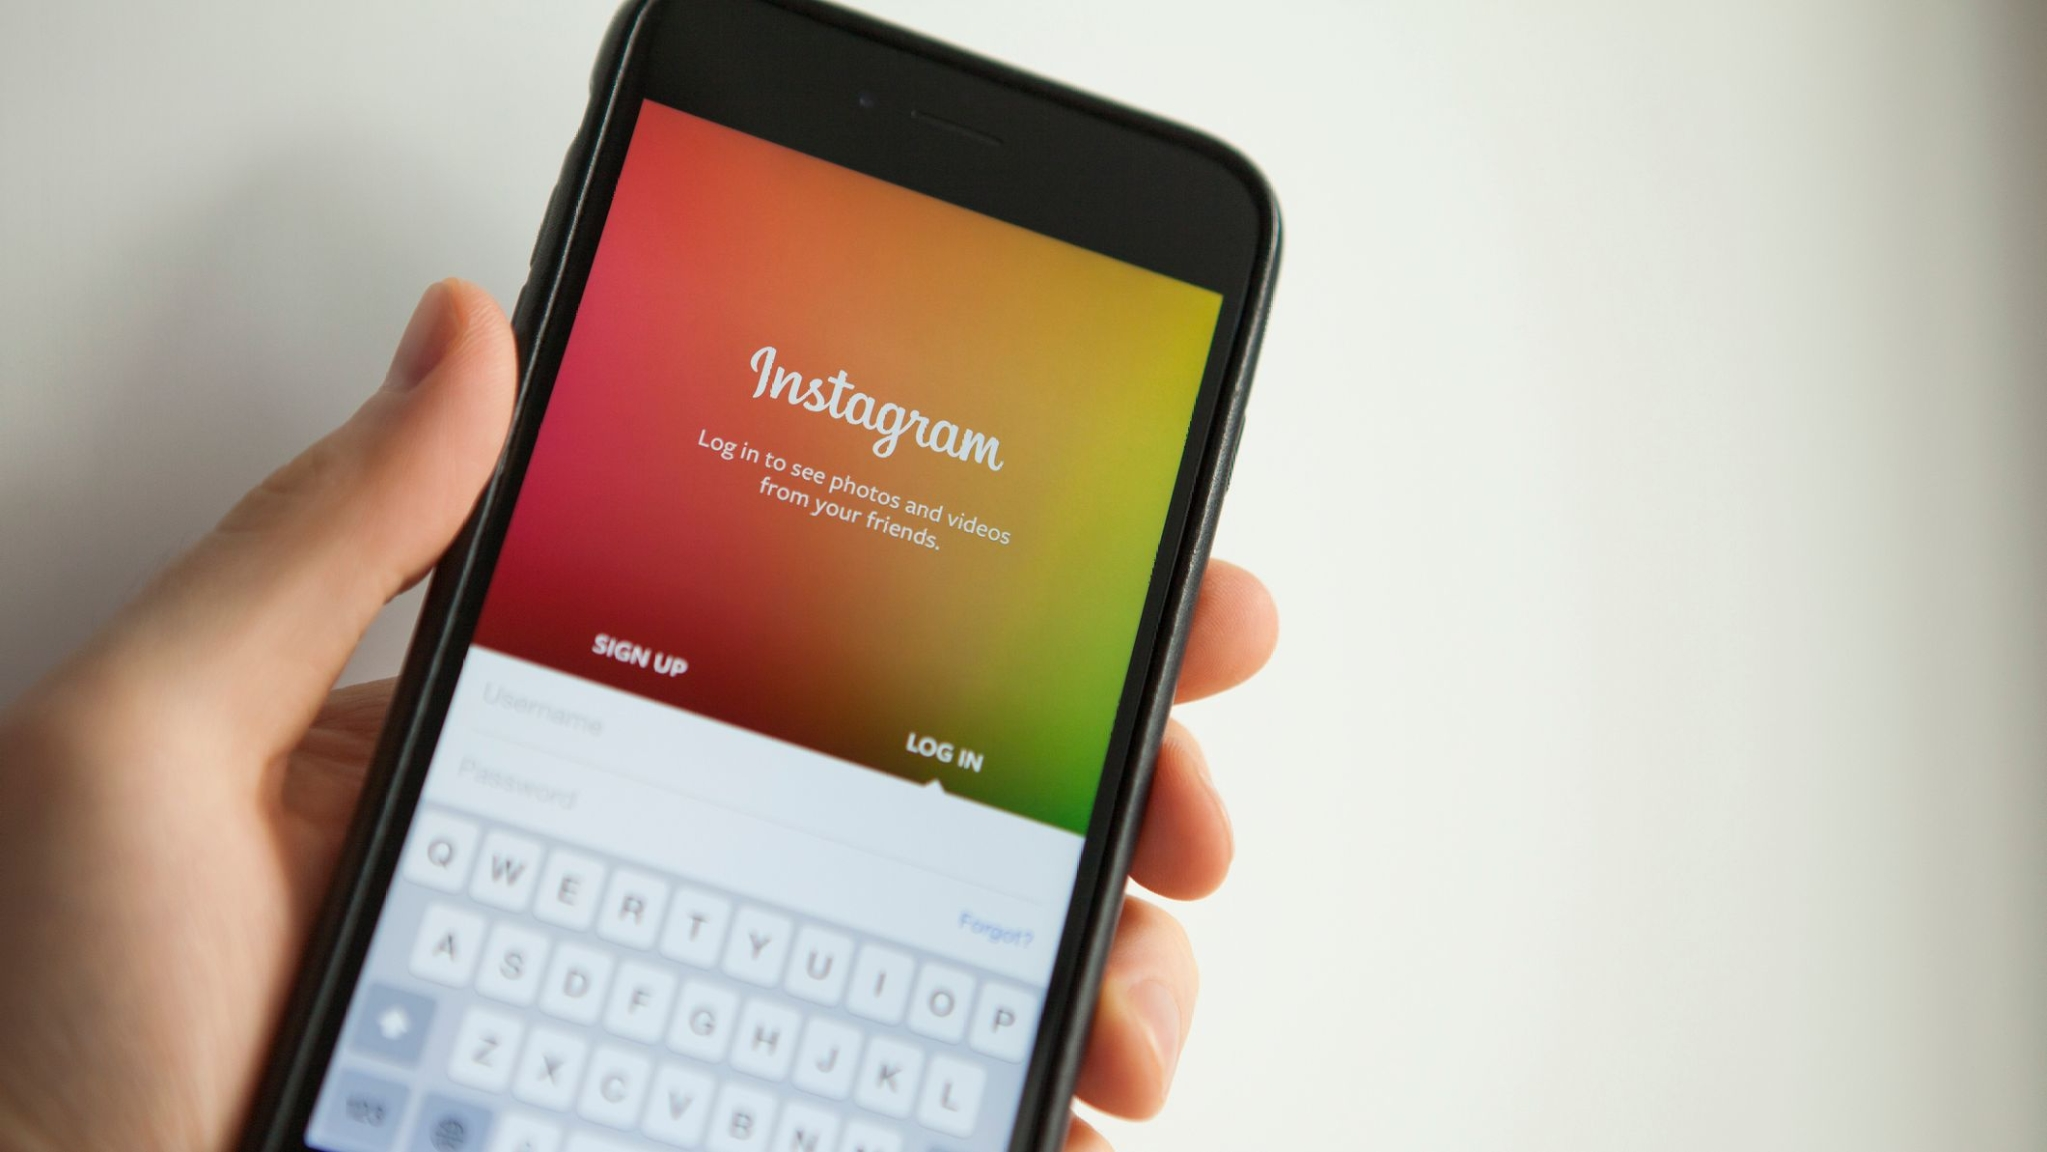 Instagram's Subtle Way to Deal With Bullies – Restrict, Not Report